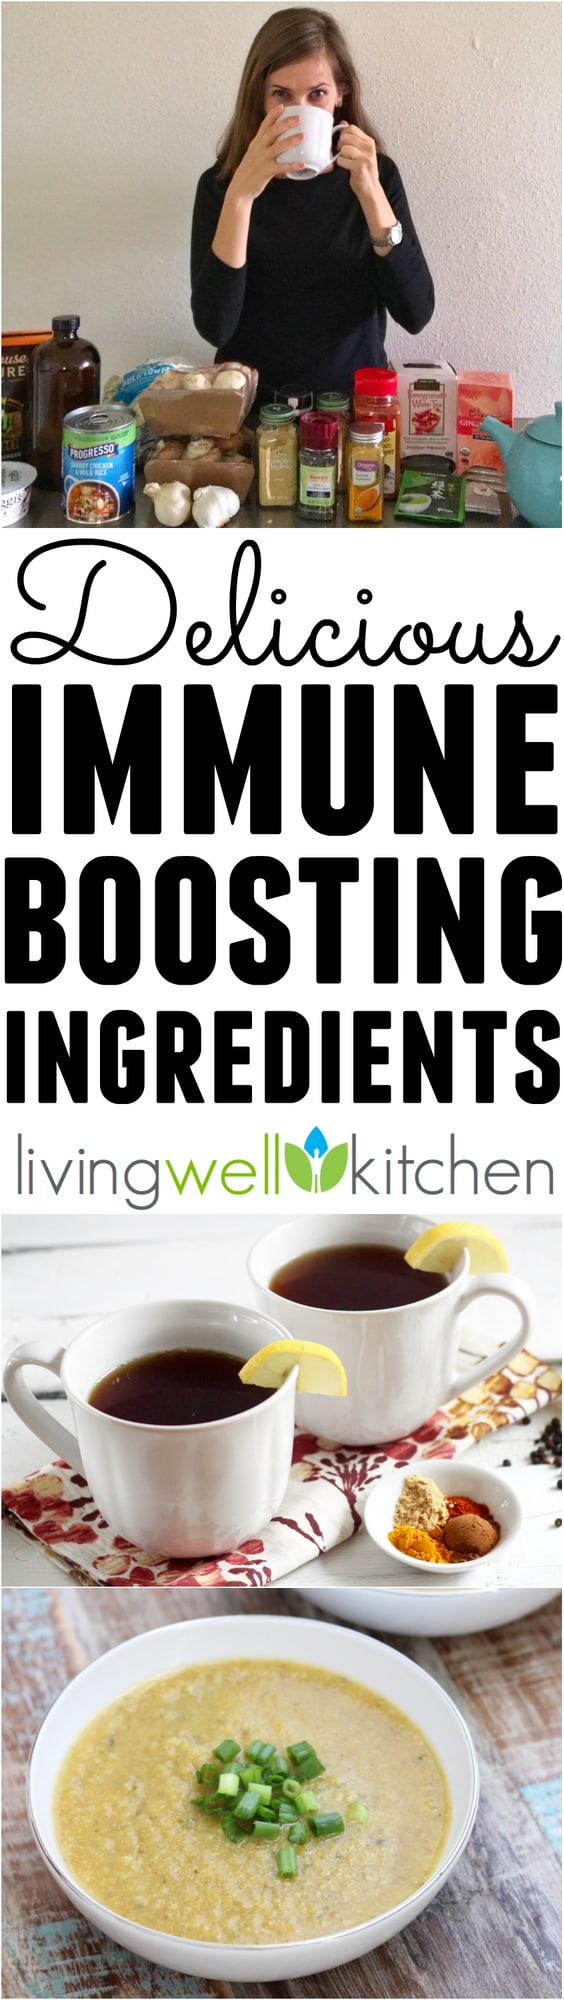 Five Tasty Ideas to Help Boost Your Immune System from Living Well Kitchen, so you can fight off getting sick. Includes foods and beverages with recipes to keep you and your family healthy this year